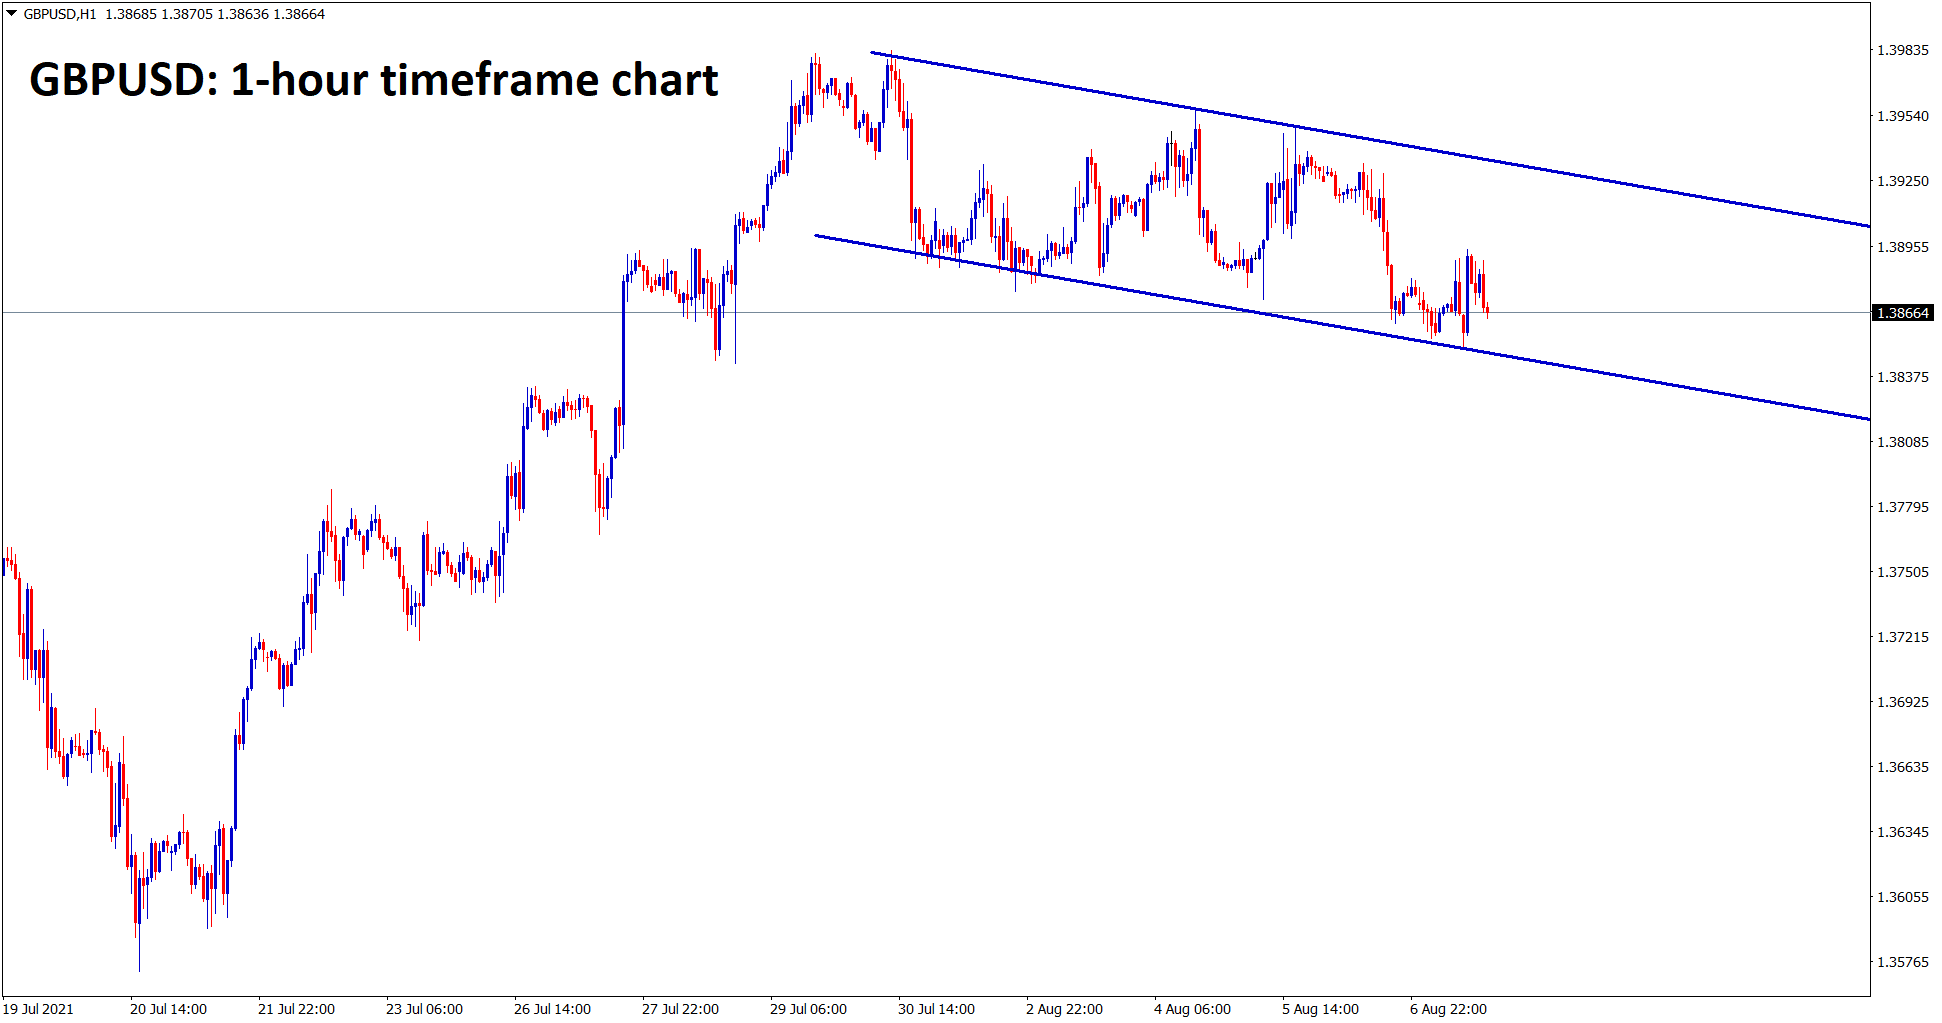 GBPUSD has formed a flag pattern in an uptrend in the 1 hour timeframe chart